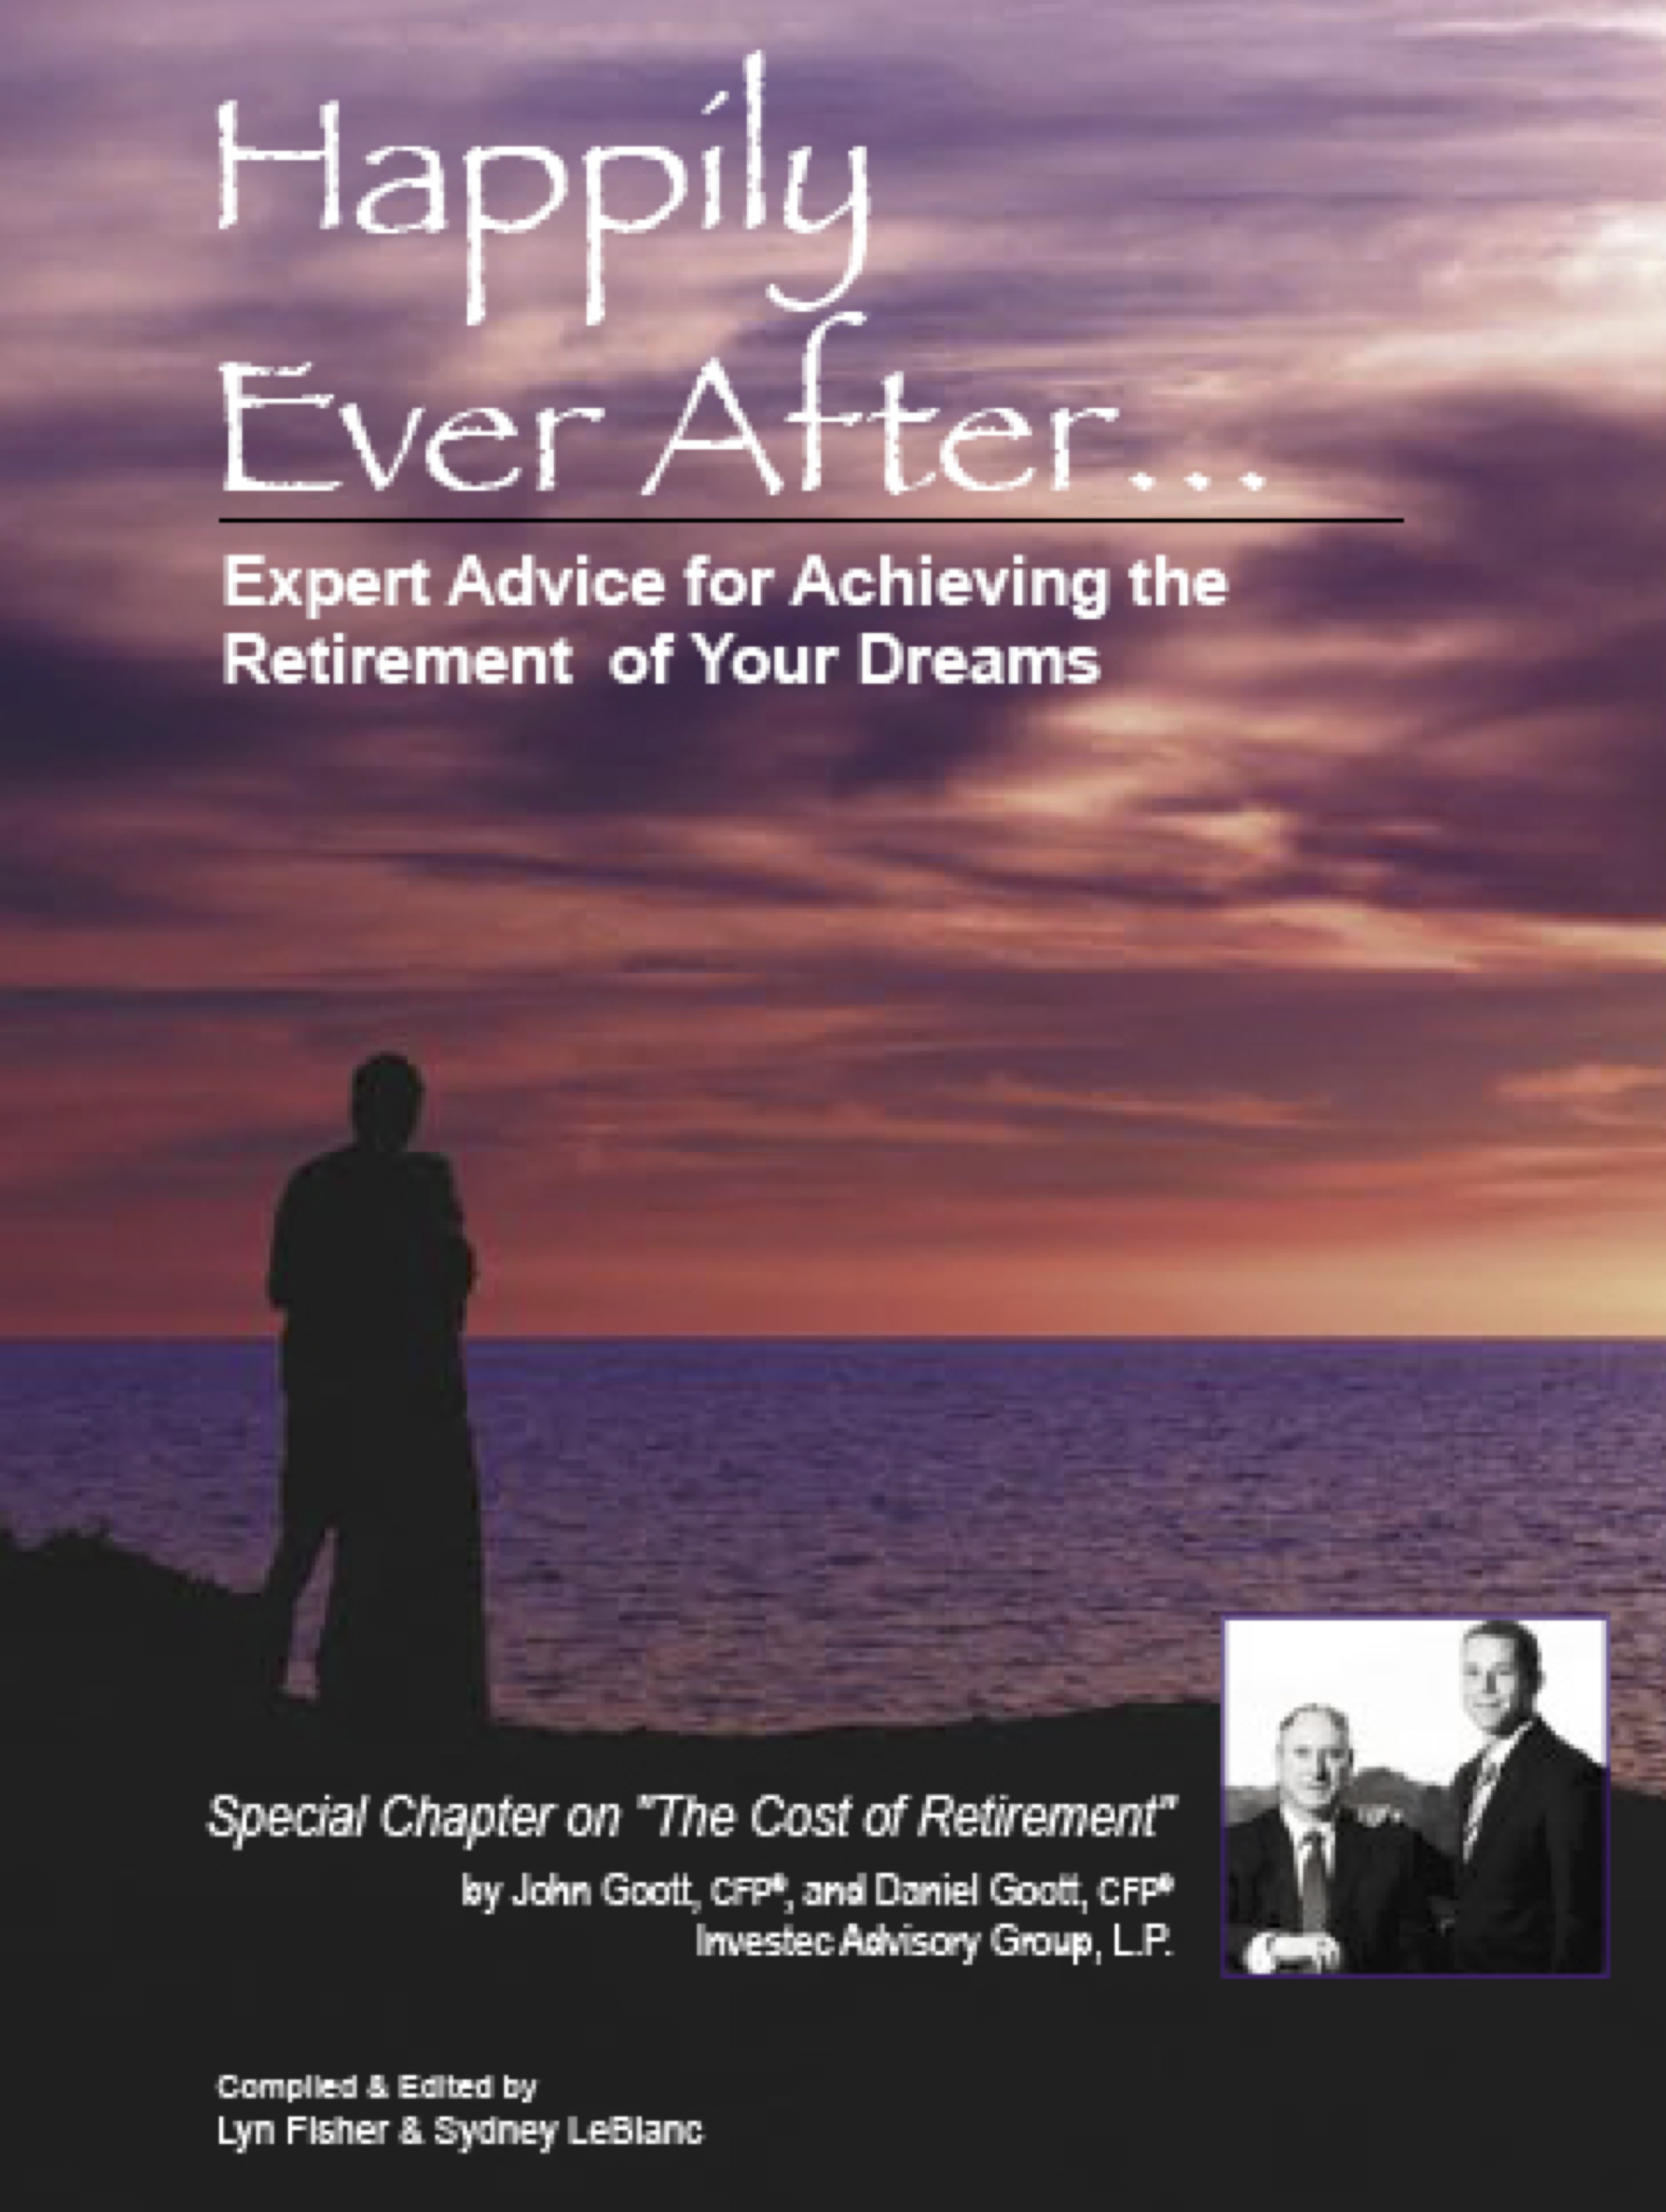 Investec - Published in Happily Ever After... Expert Advice for Achieving the Retirement of Your Dreams, 2007